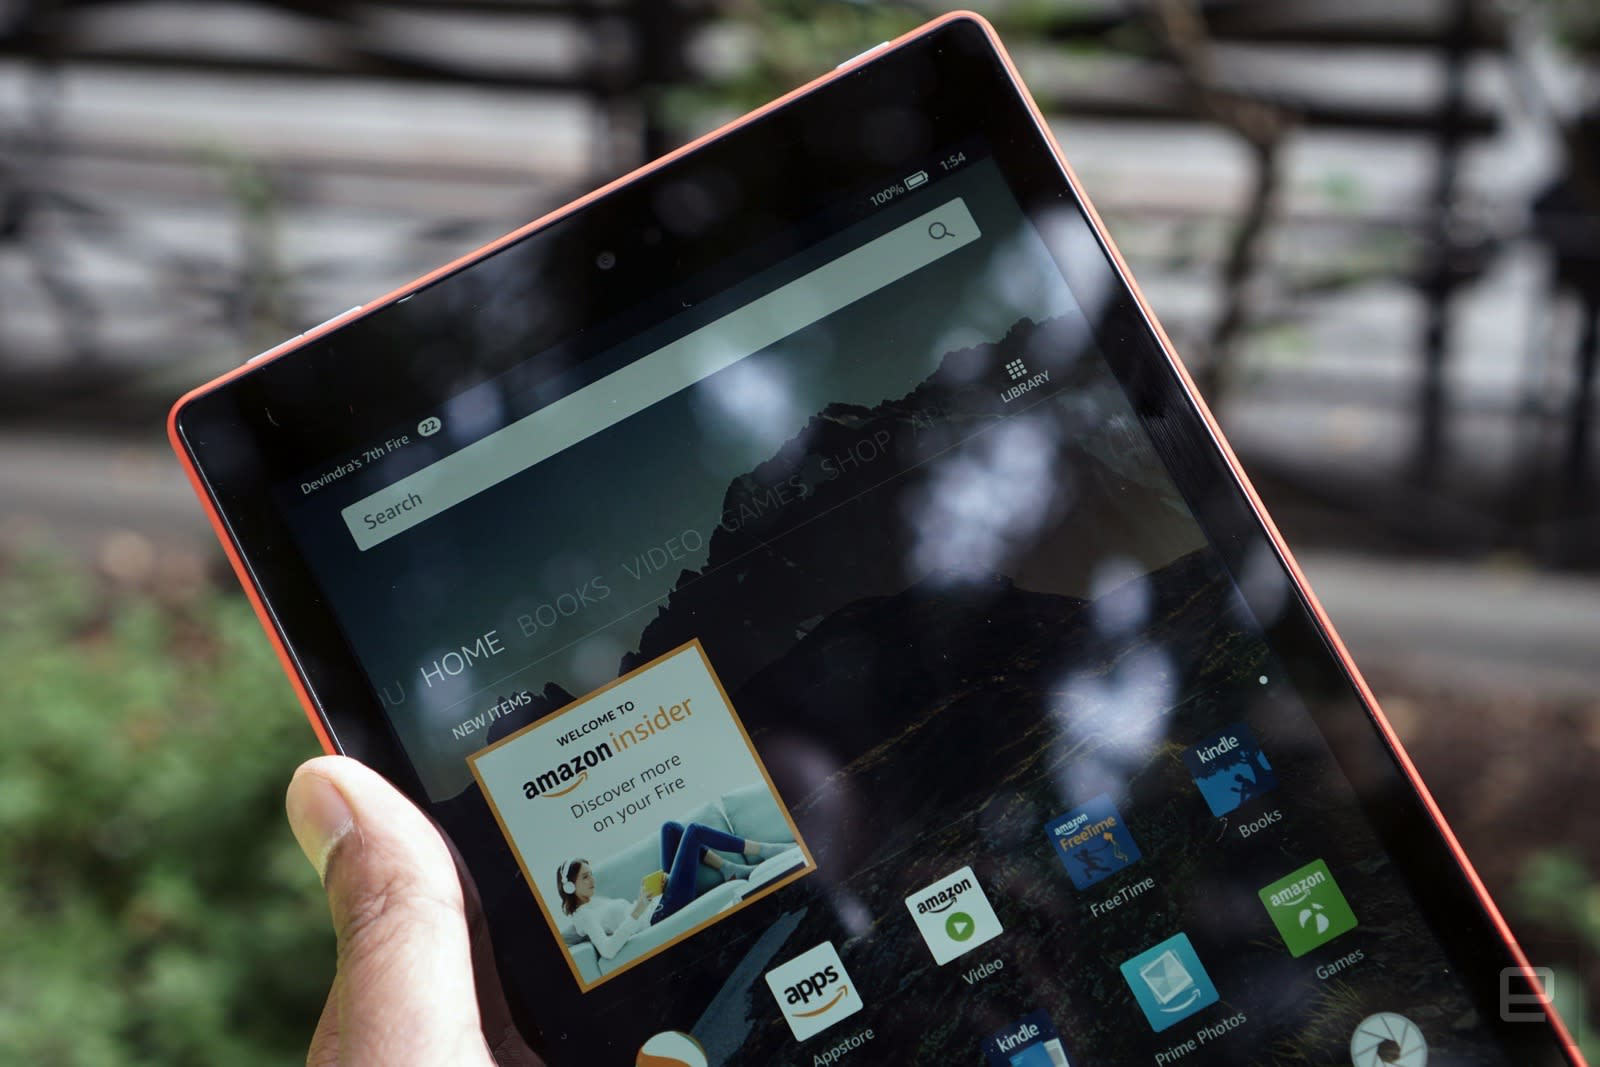 Amazon Fire HD 10 review (2017): A $150 tablet that's